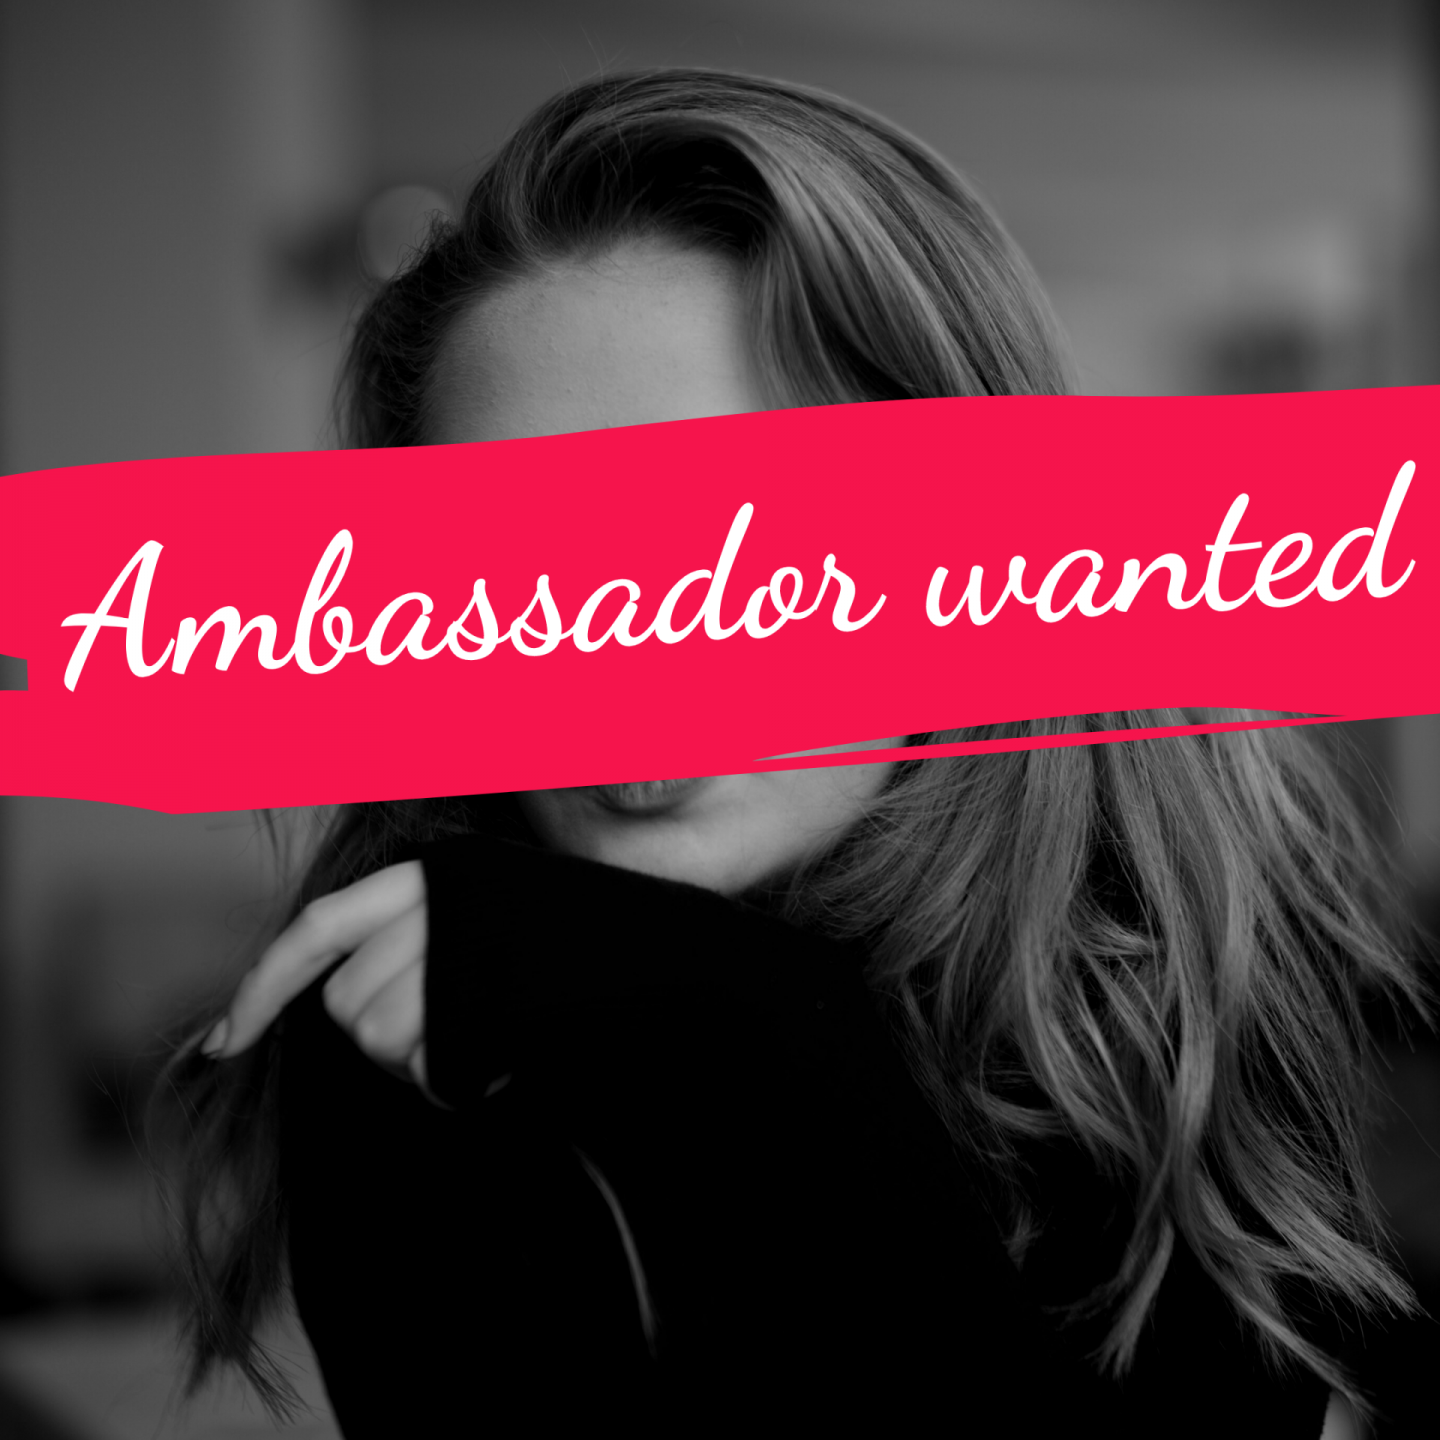 Pseudo Collaborations- Everyone wants to be an Ambassador